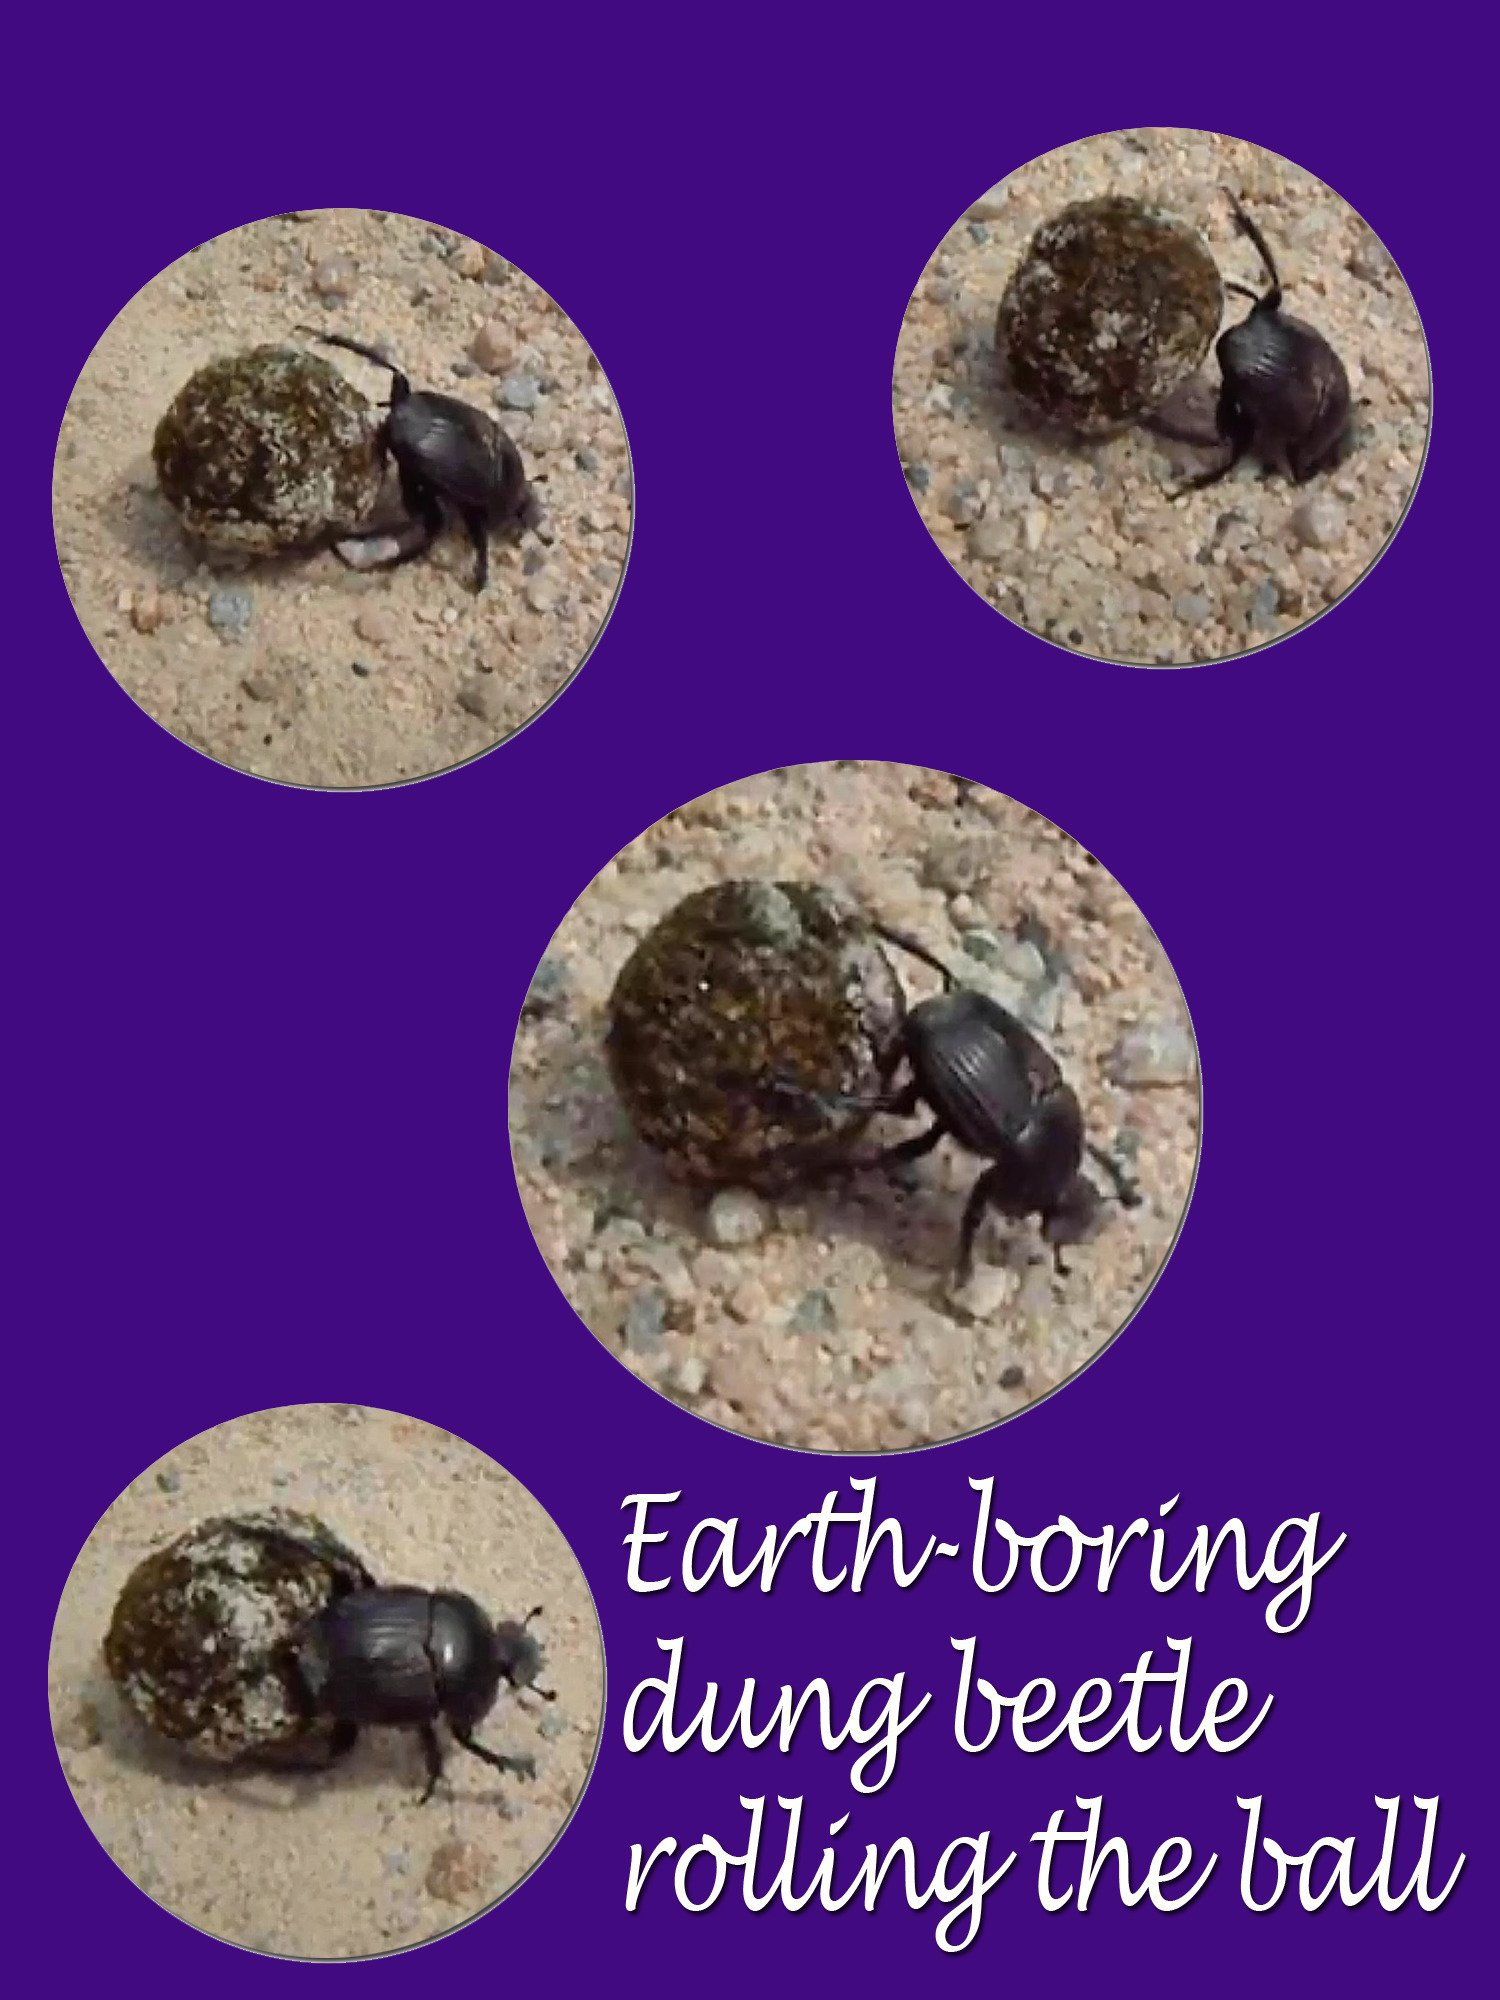 Clip: Earth boring dung beetle rolling the ball